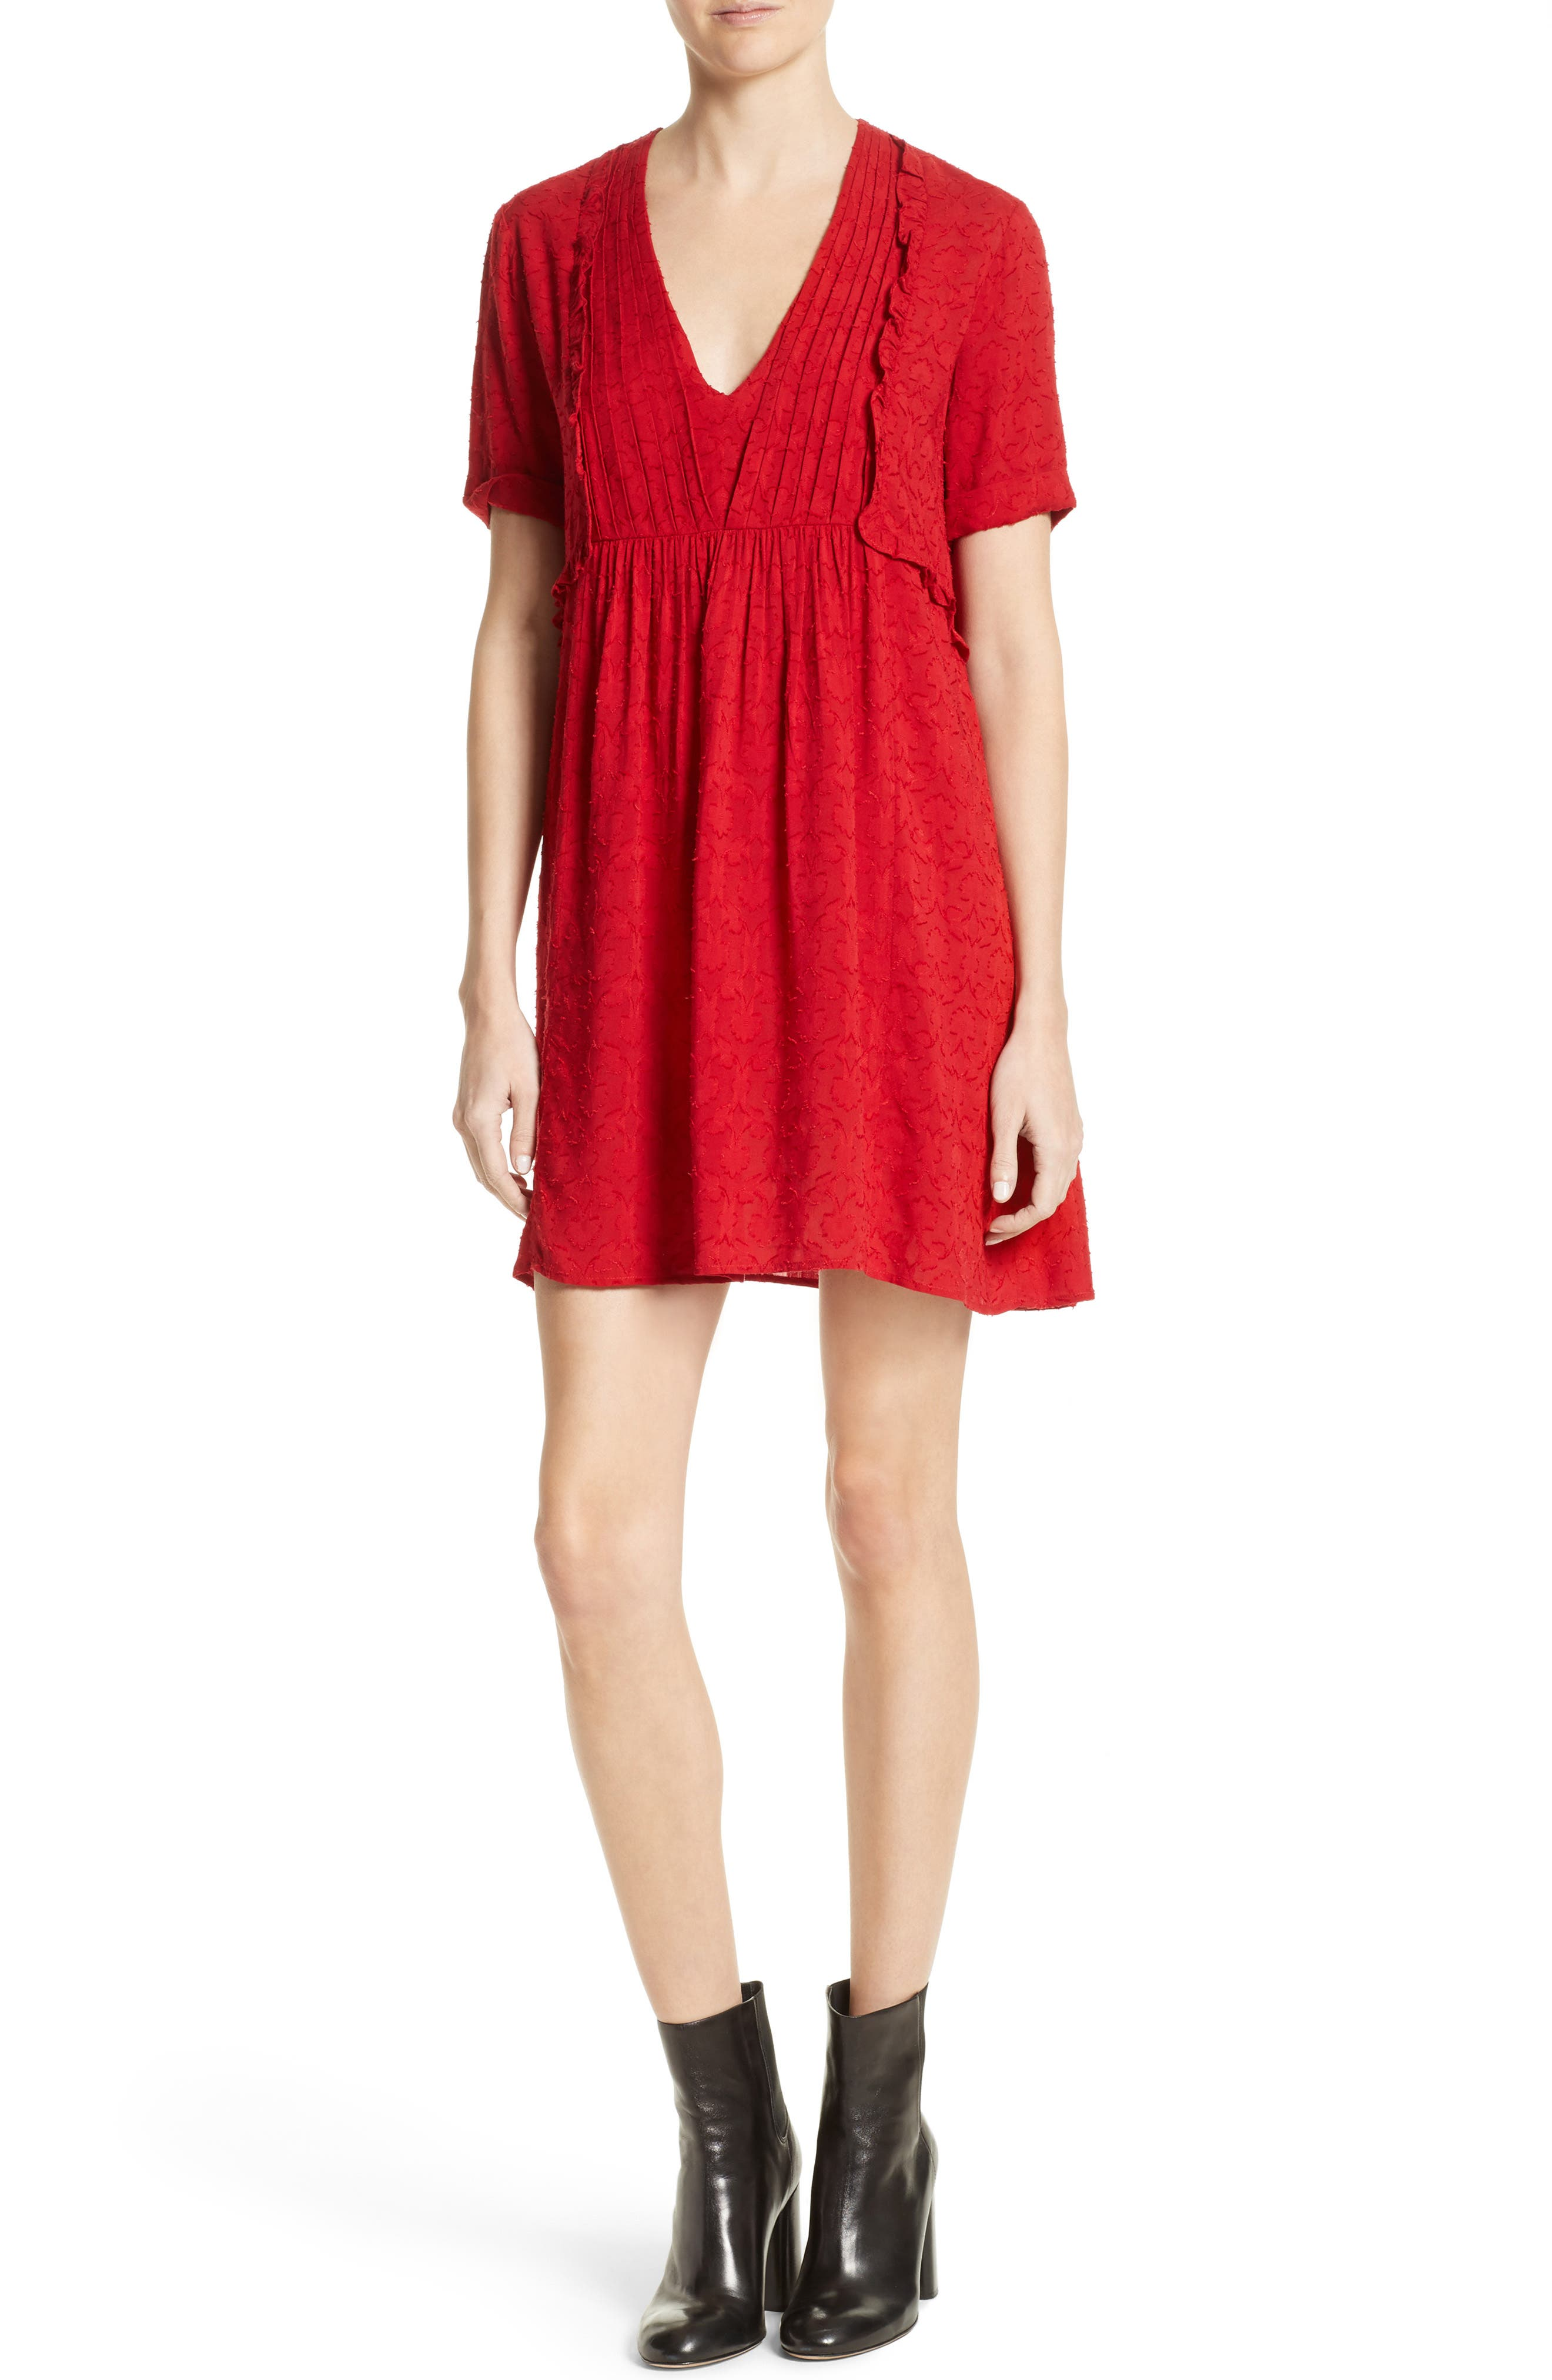 The Kooples Ruffle Dress